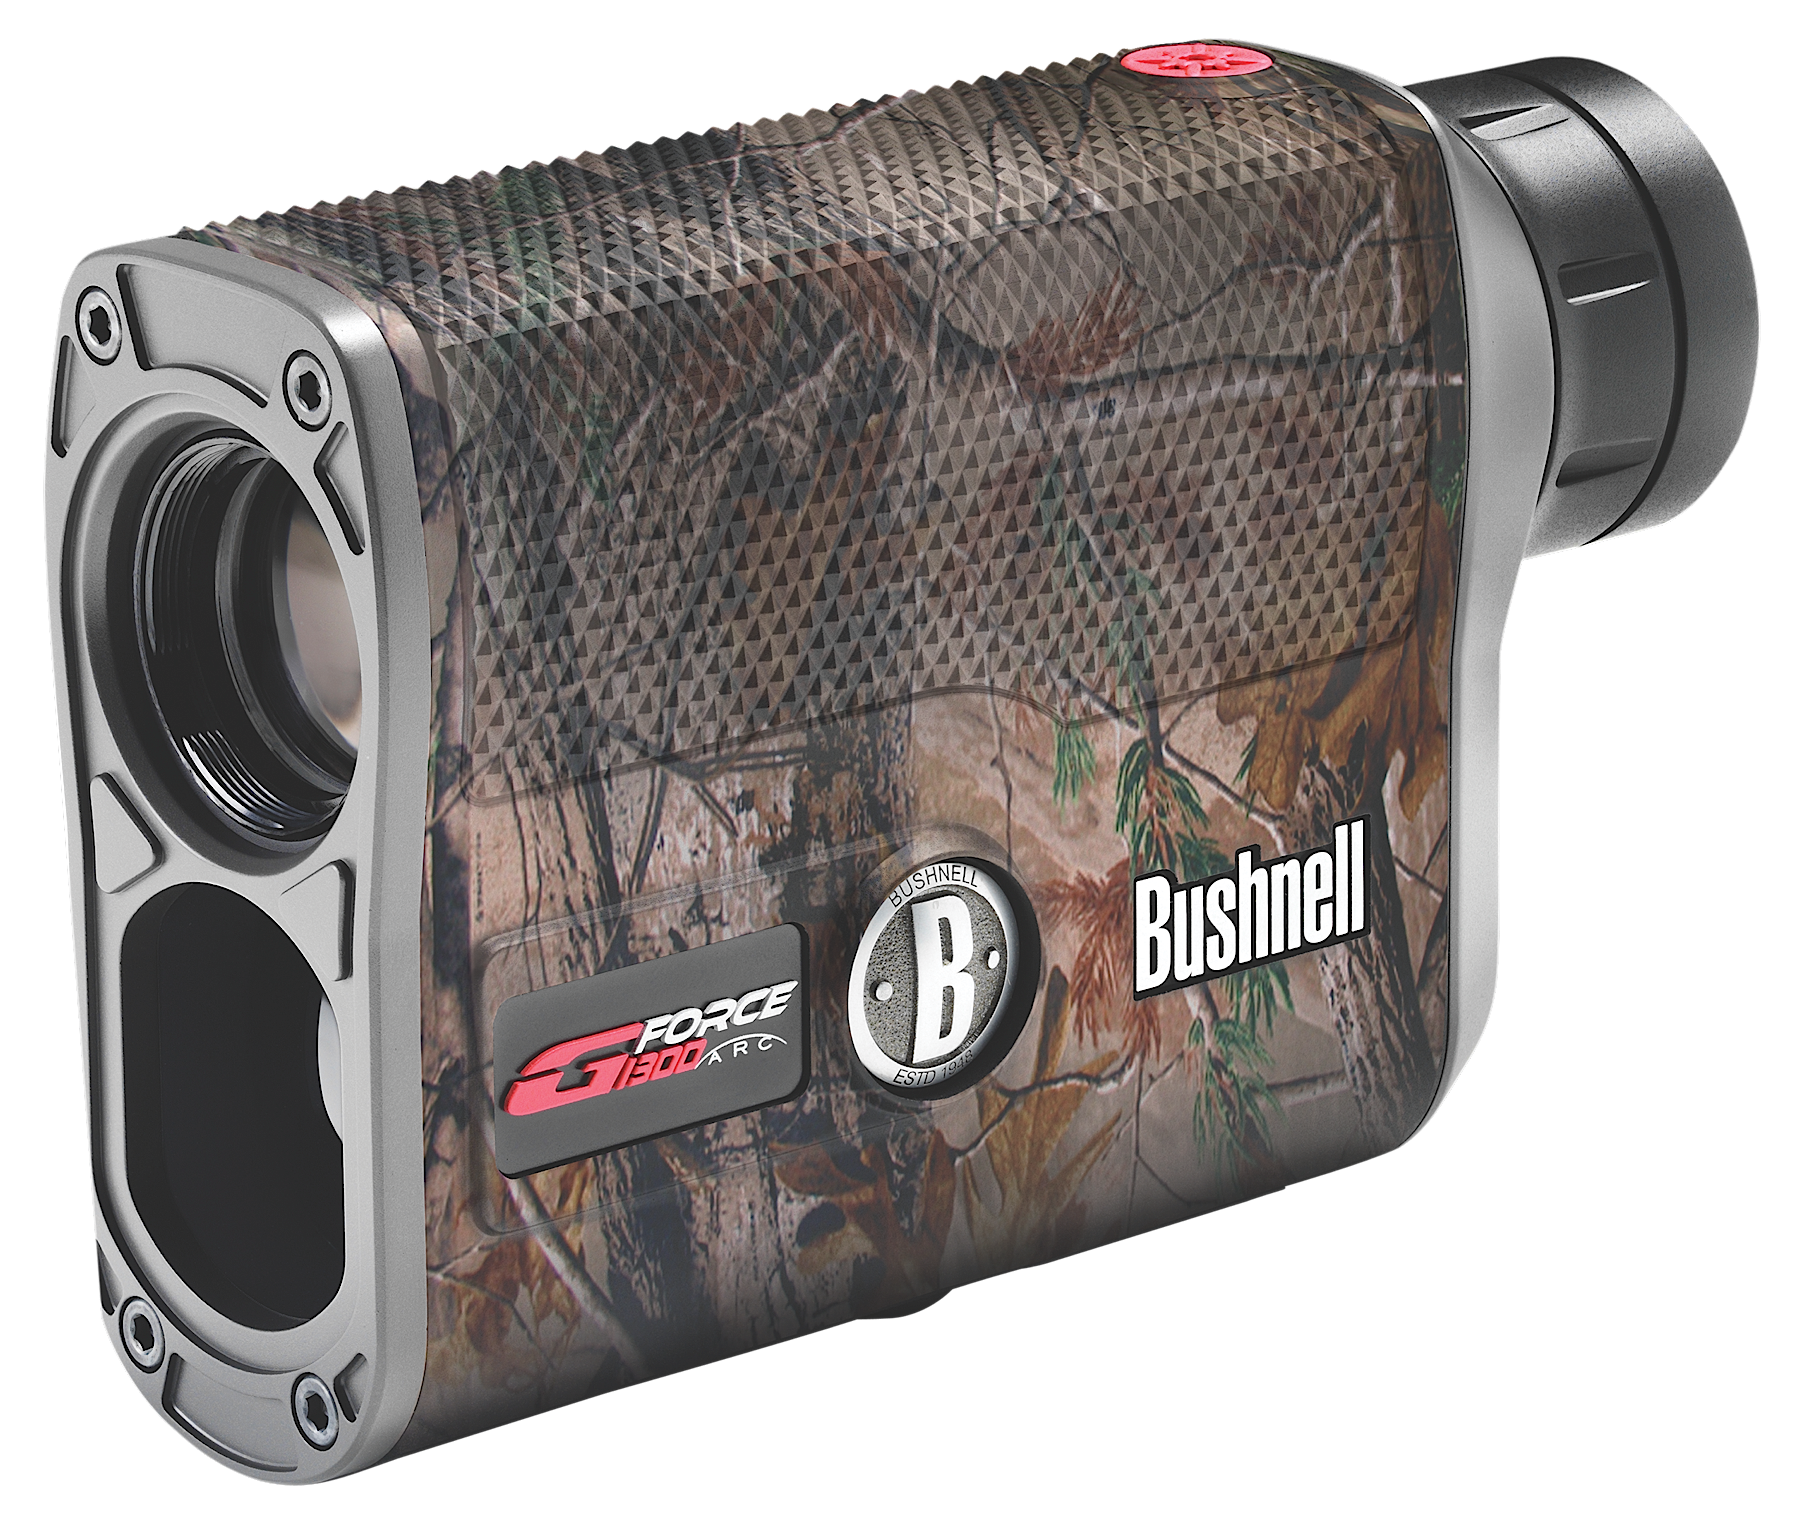 Bushnell 201966 G Force 1300 ARC 6x 21mm Realtree